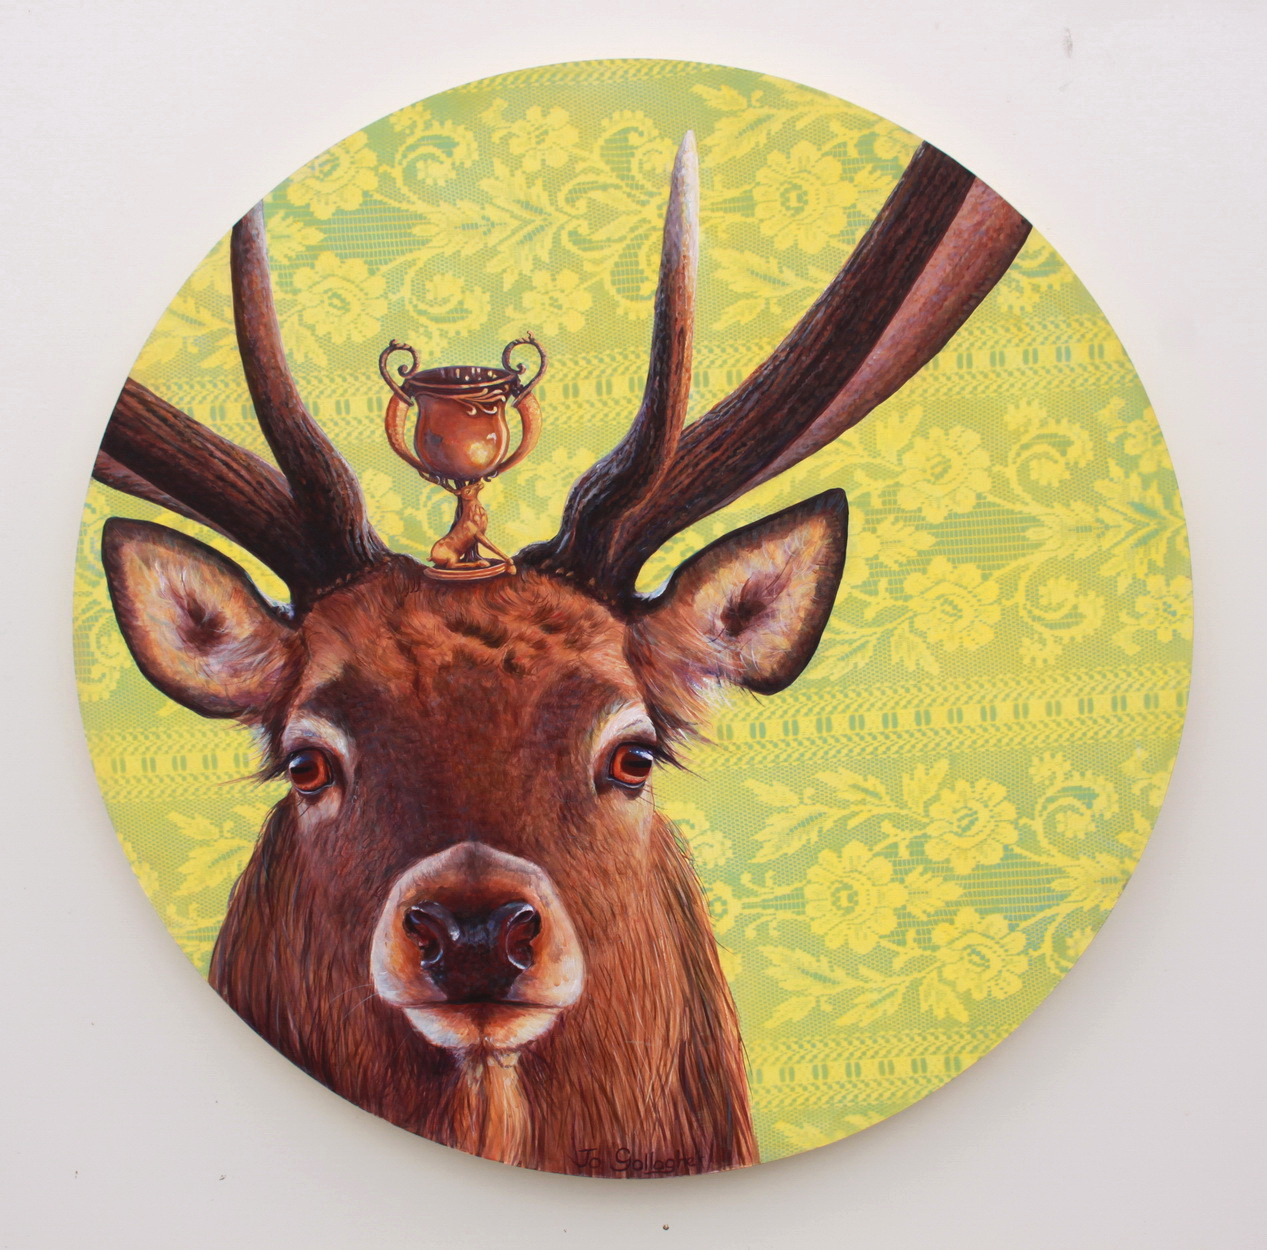 The Trophy Stag